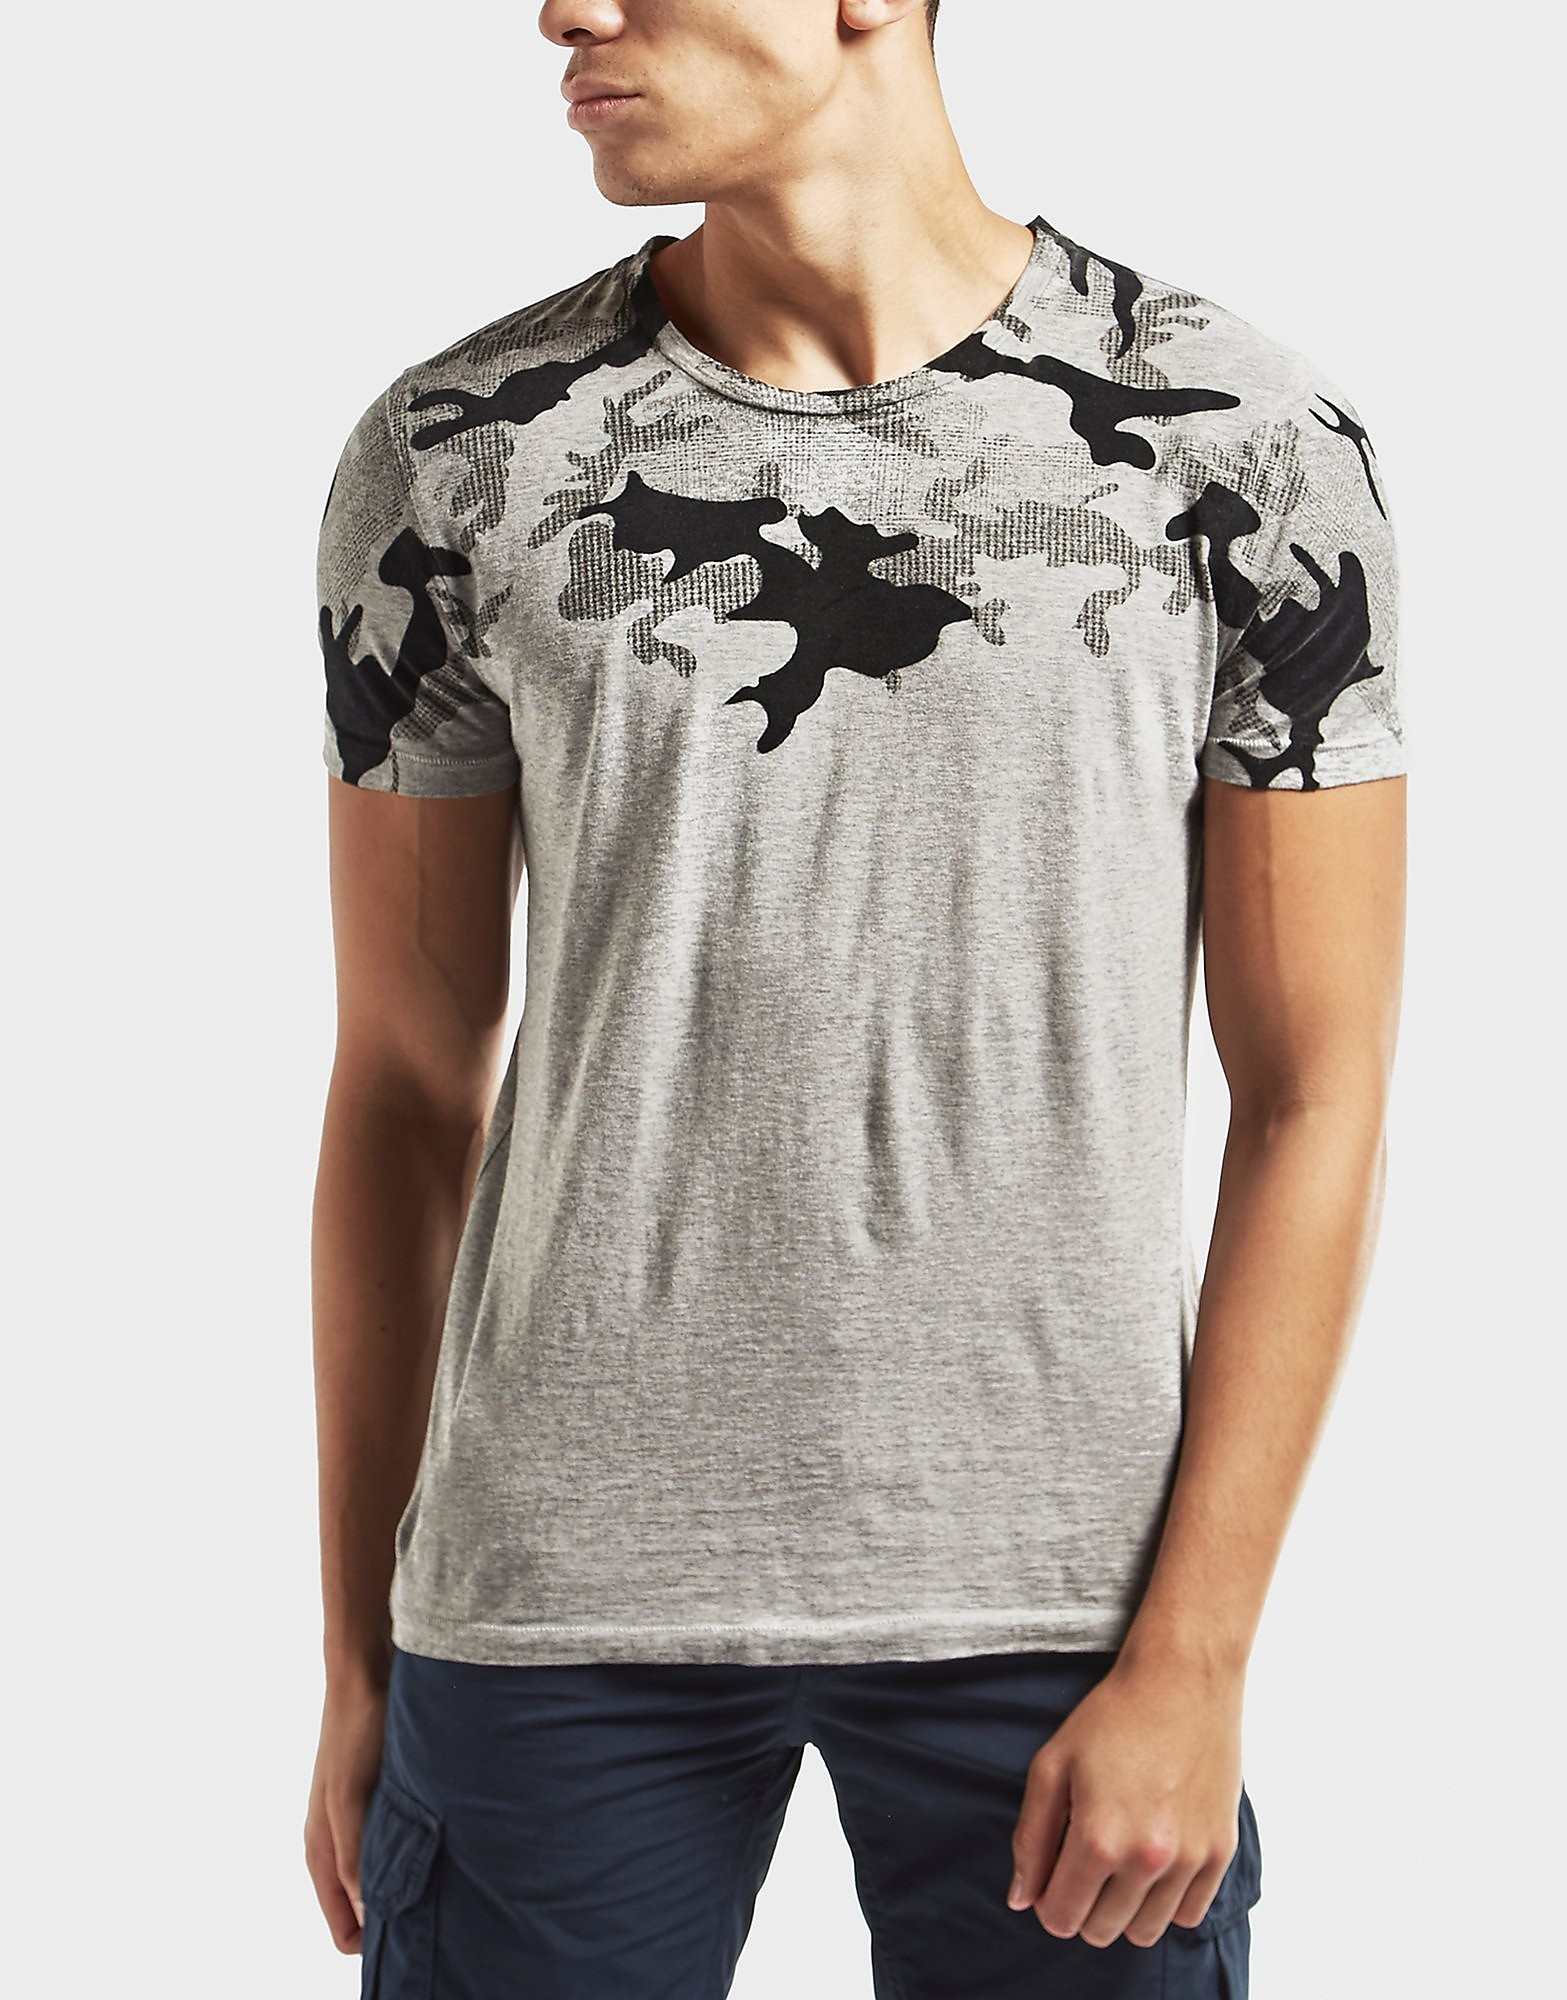 BOSS Orange Printed Short Sleeve T-Shirt